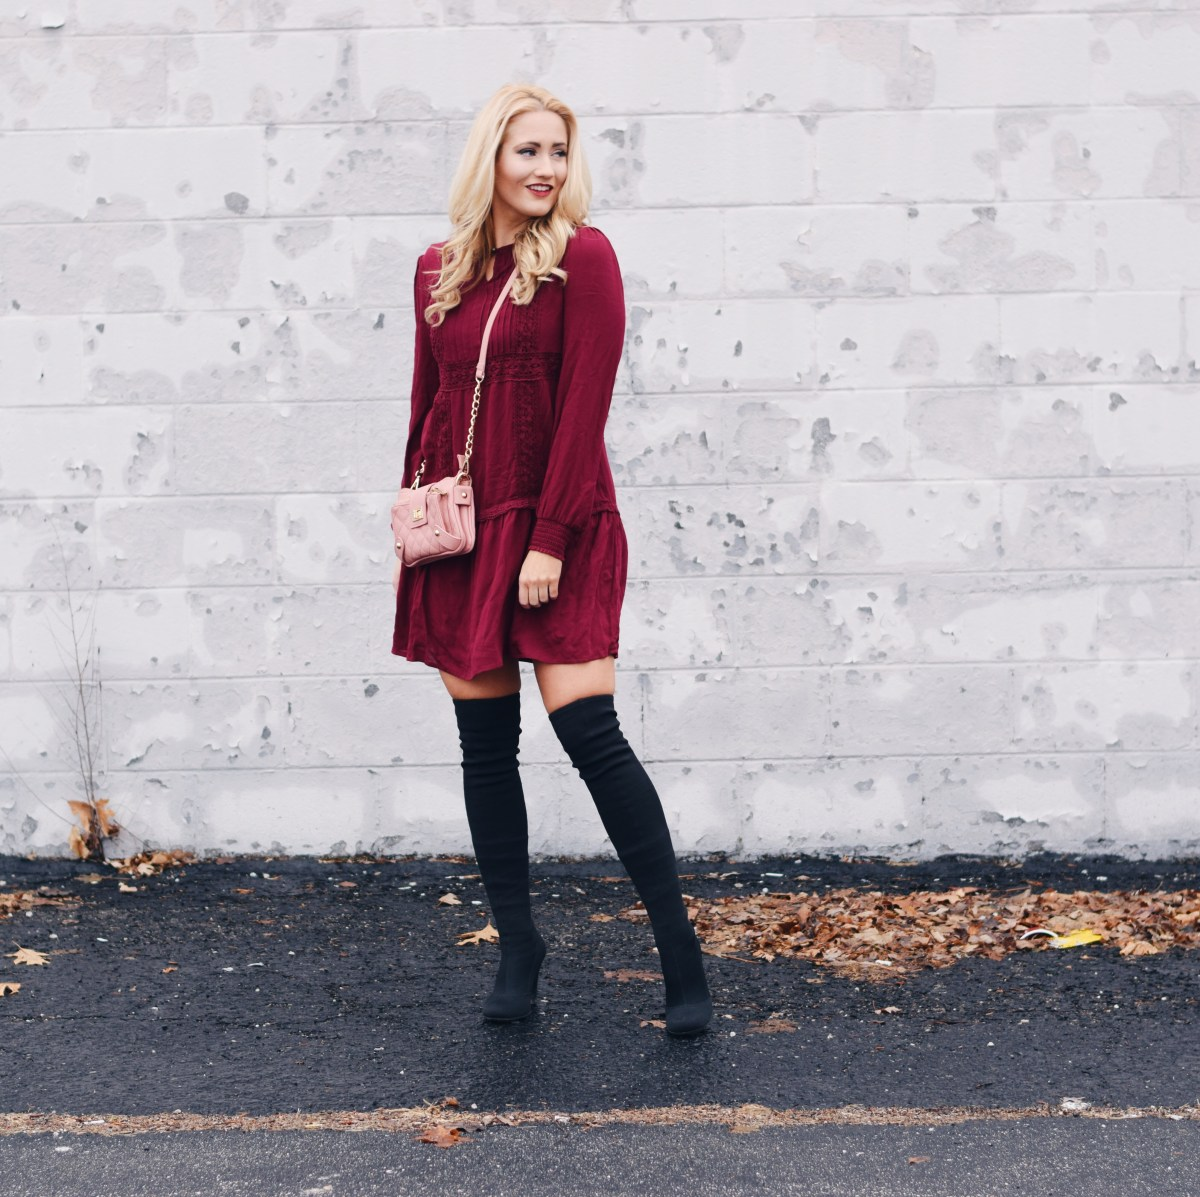 TIERED SHIFT DRESS + BOOTS